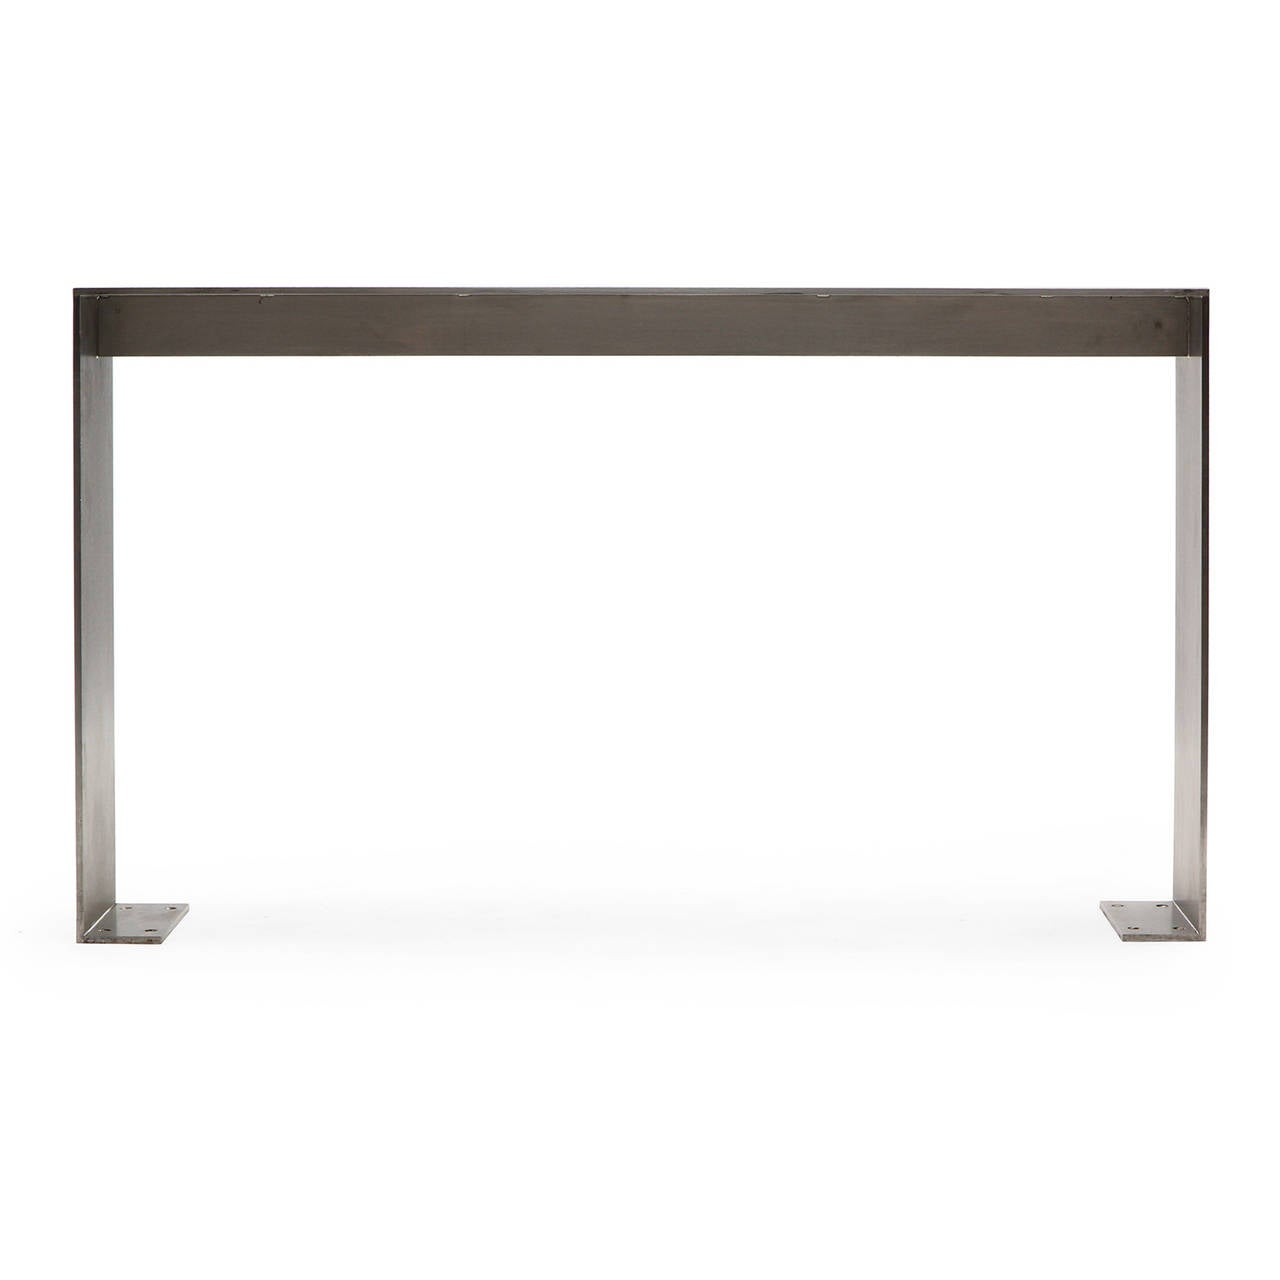 A masterfully fabricated and generously scaled rectilinear polished steel console table from New York's Yankee Stadium having inlaid Yankees logos on the top.